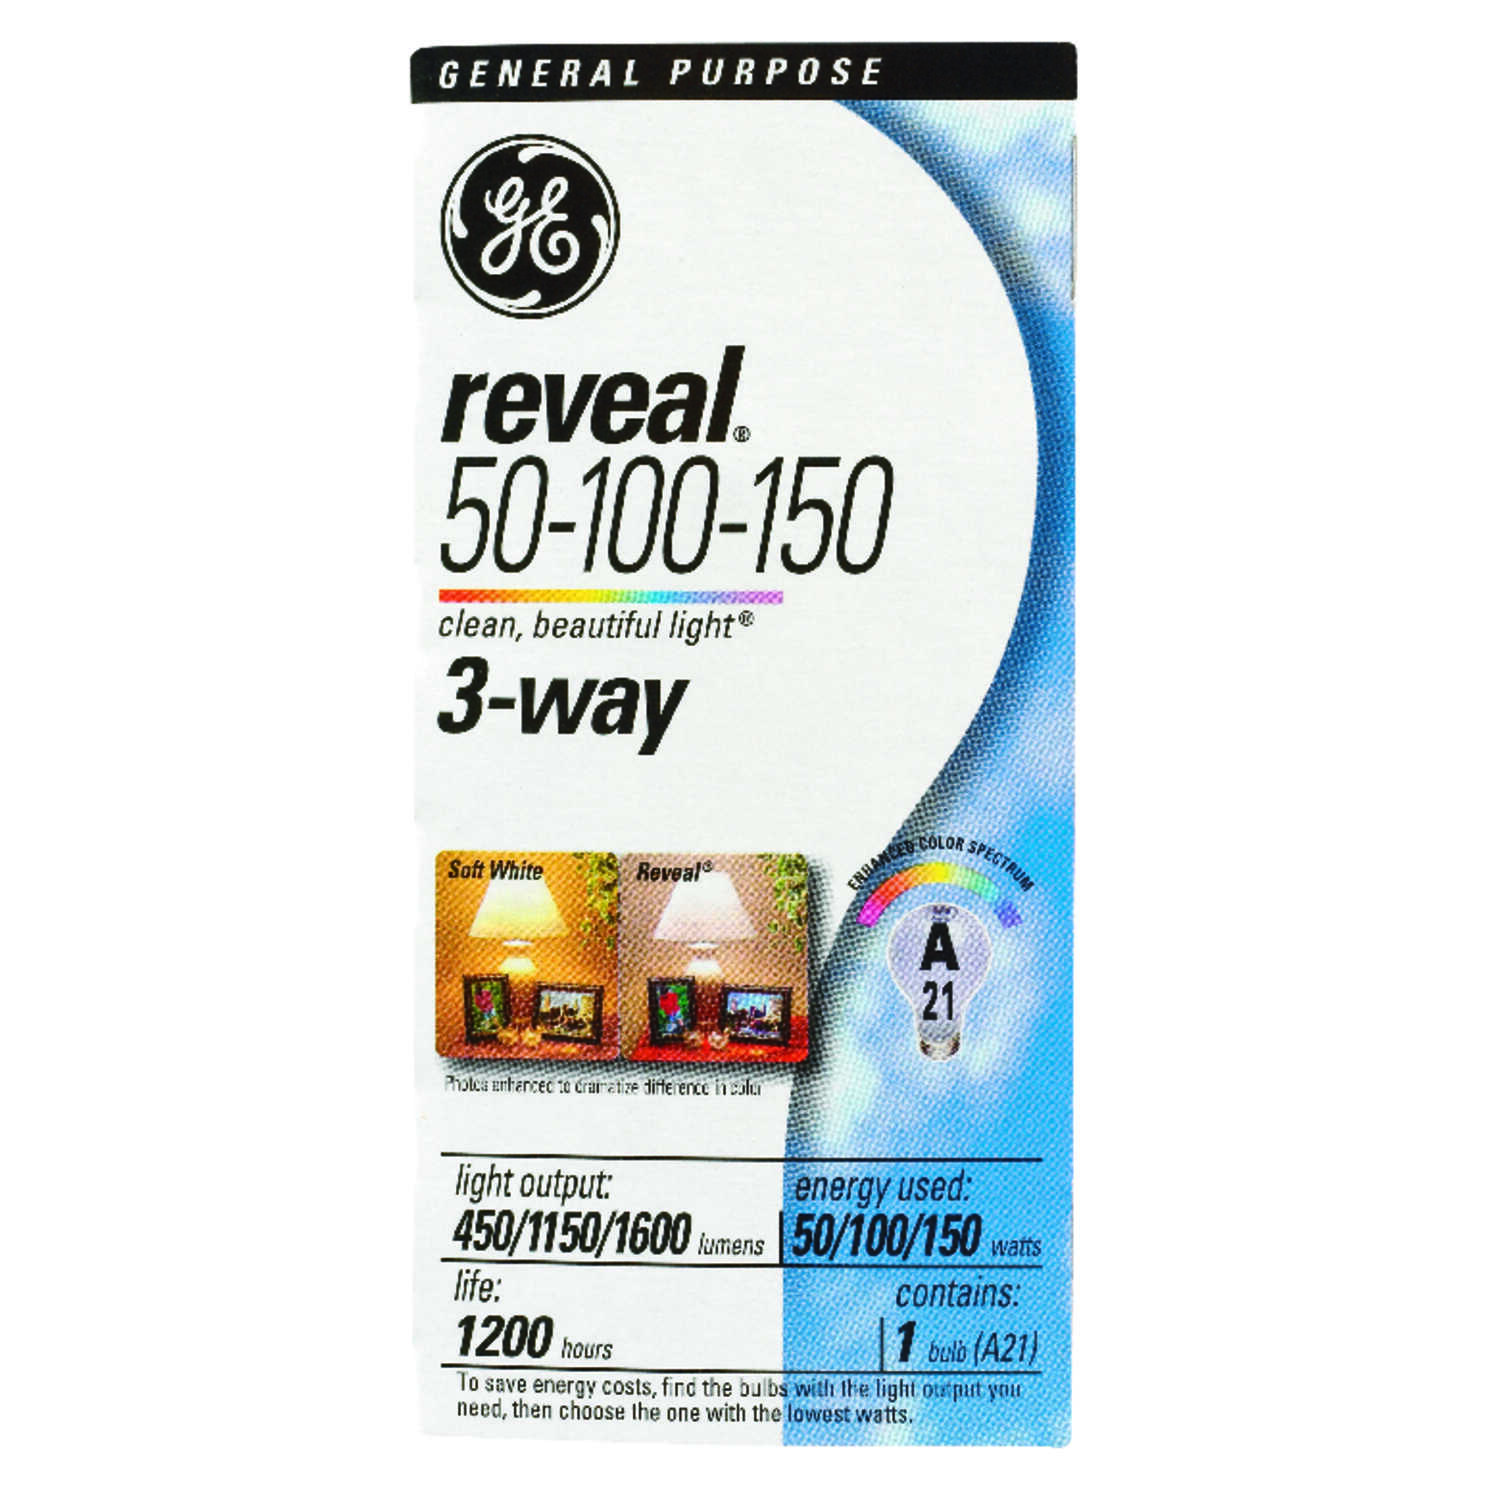 GE Lighting  Reveal  50/100/150 watts A21  Three Way Bulb Incandescent Bulb  450/1,150/1,600 lumens